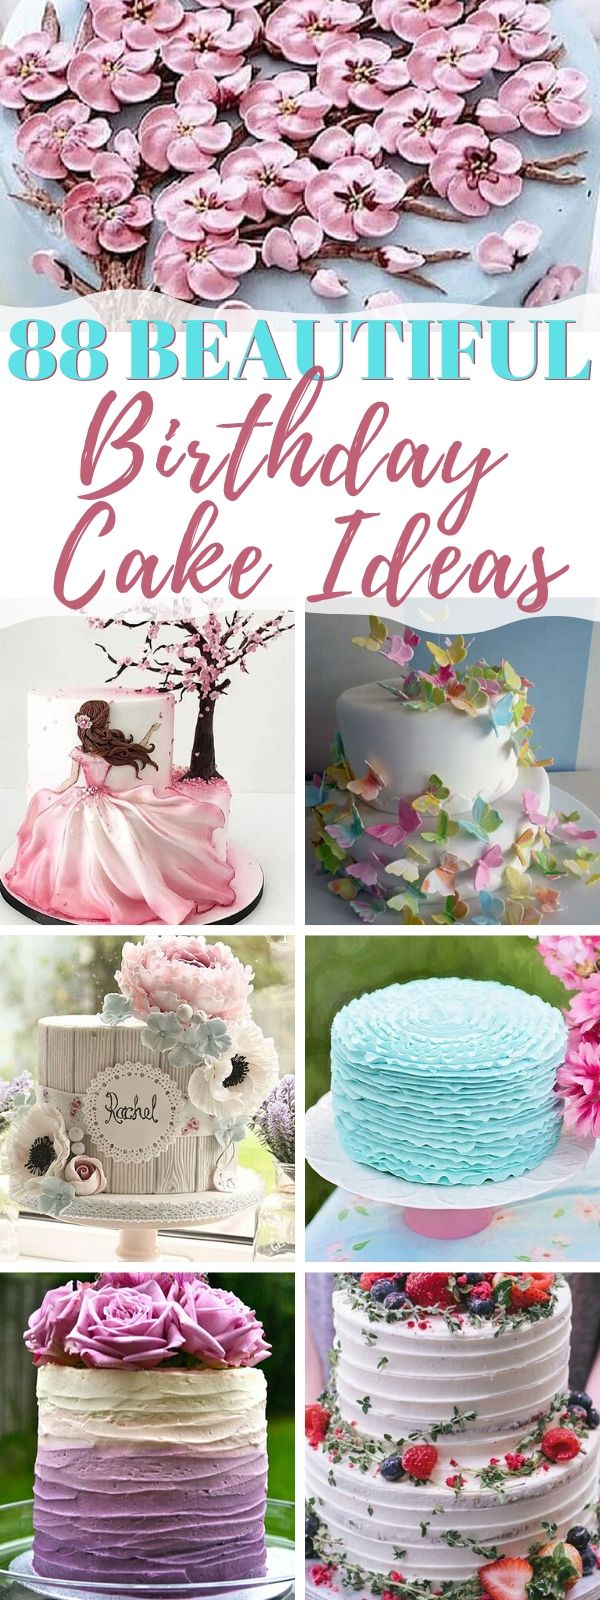 88 Beautiful Birthday Cake Ideas